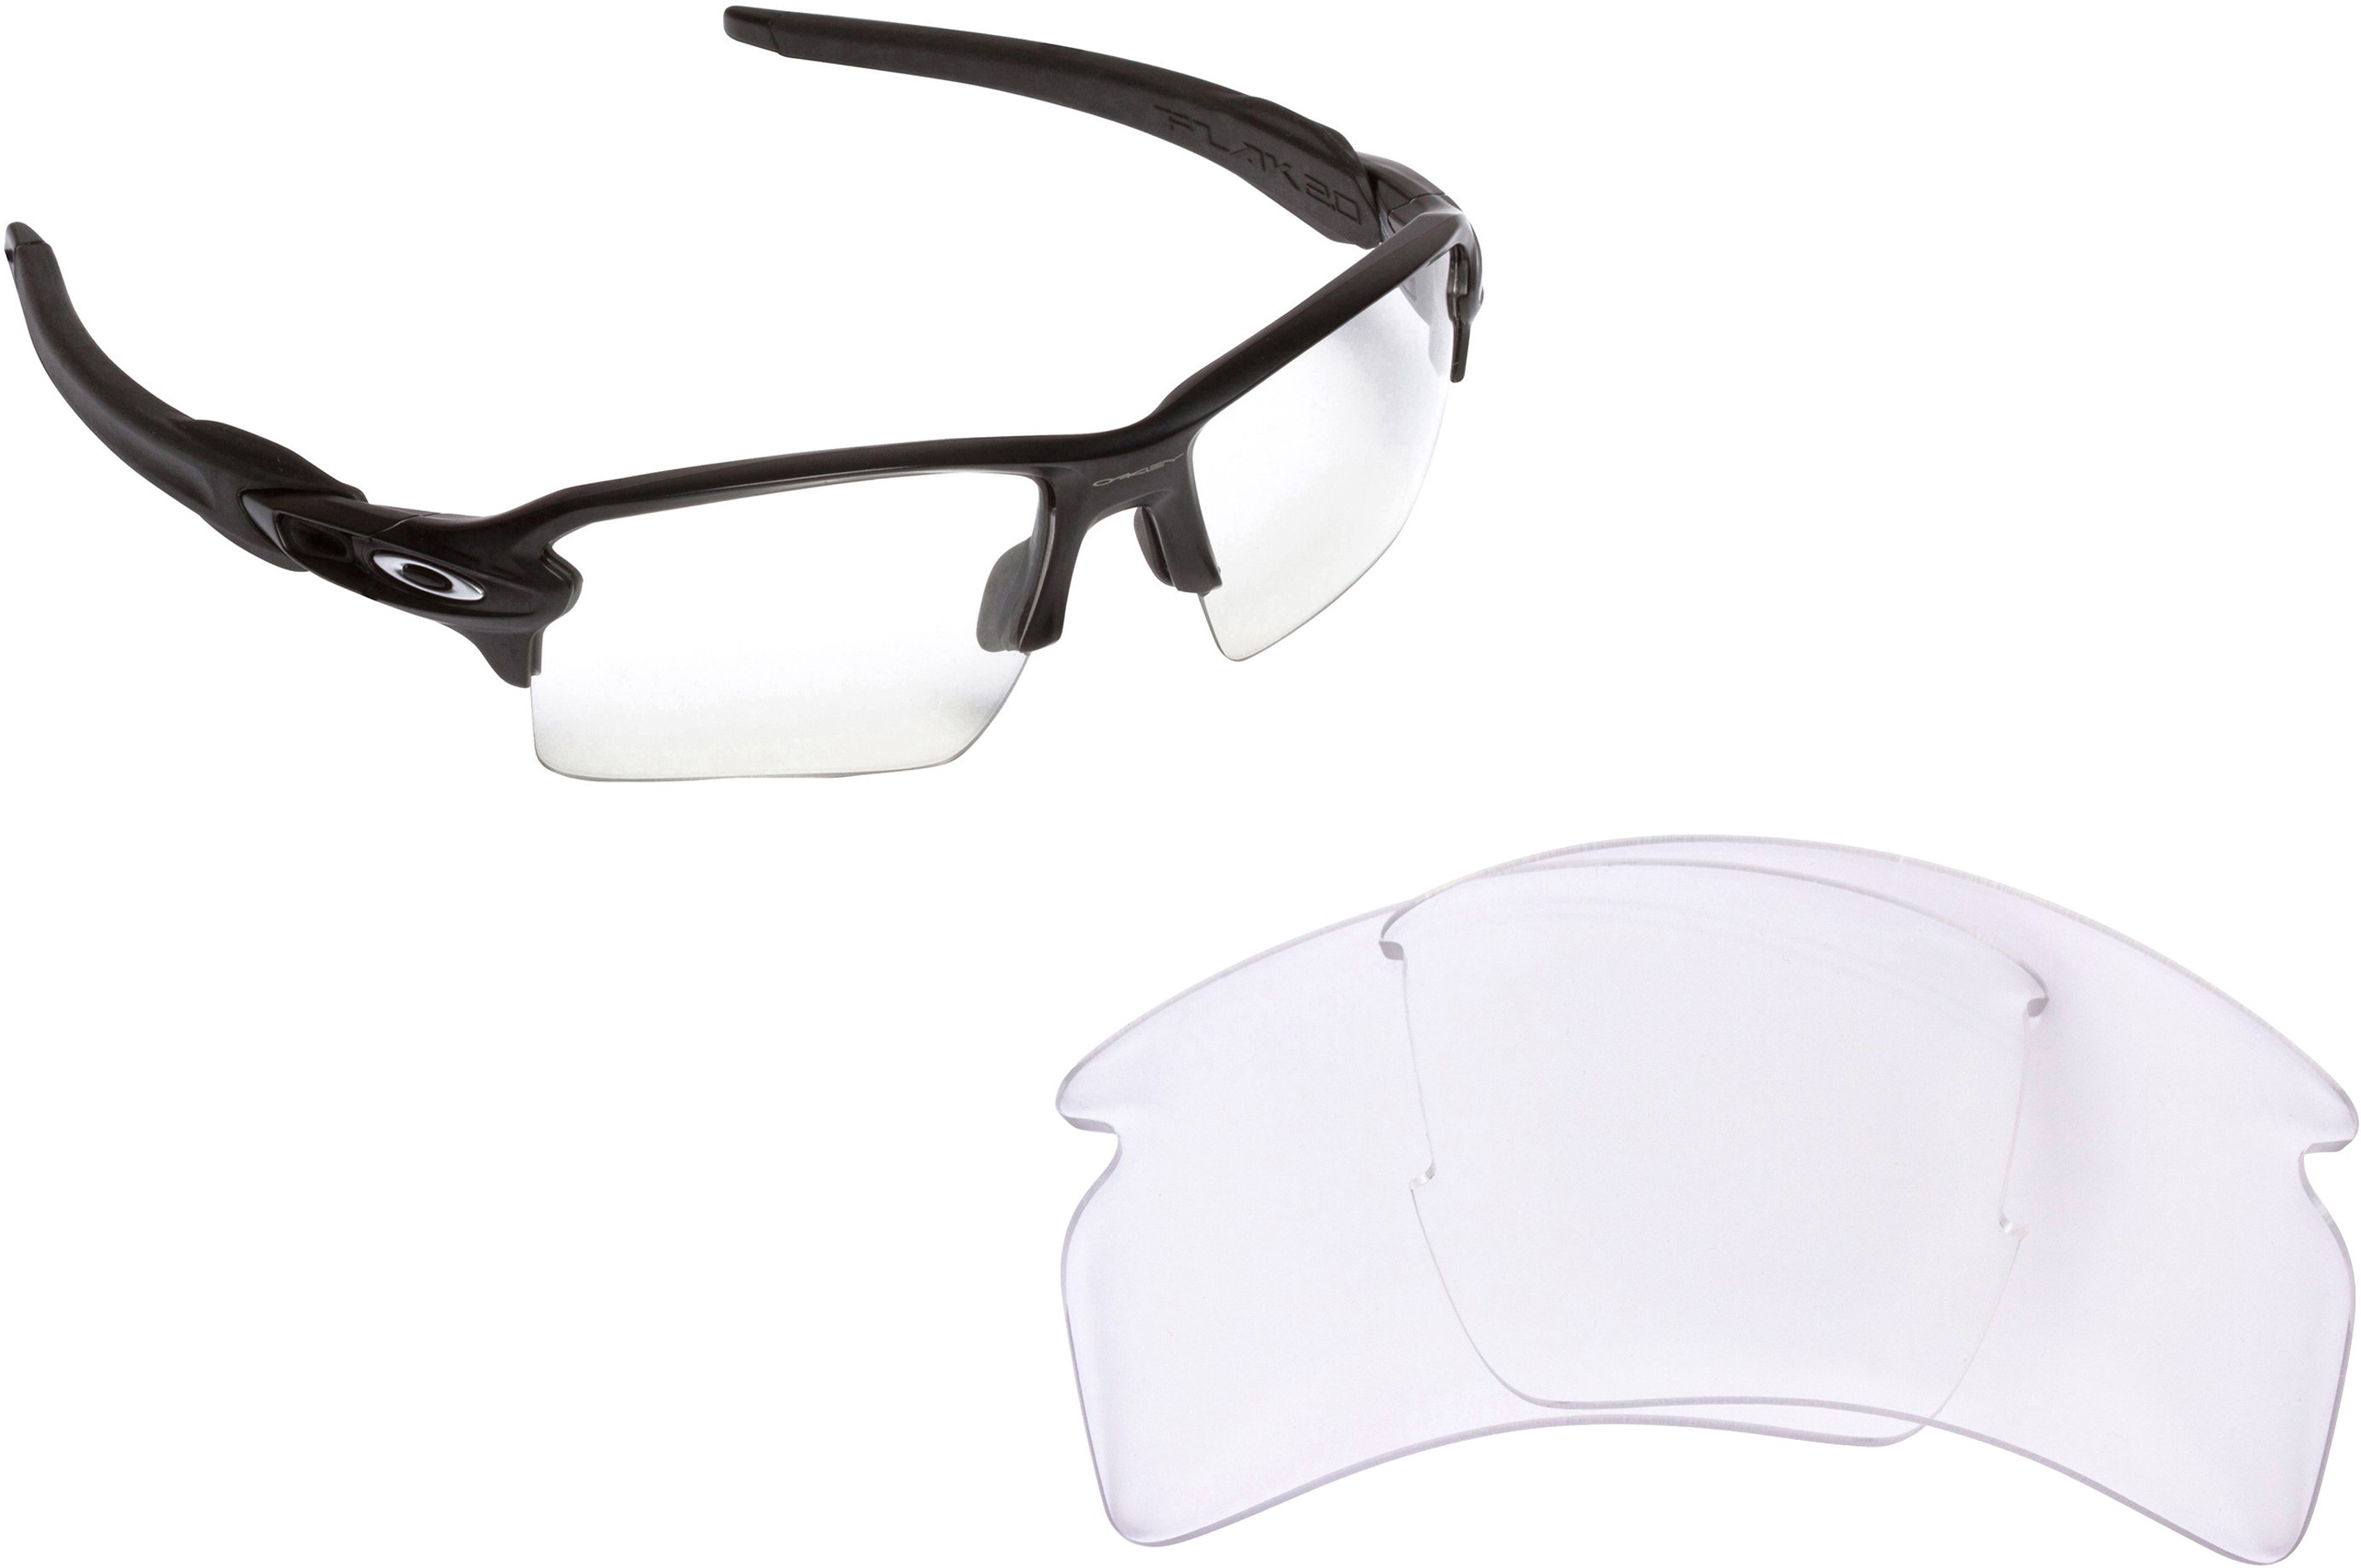 37c6bae5a906 Oakley Safety Glasses Clear Lenses